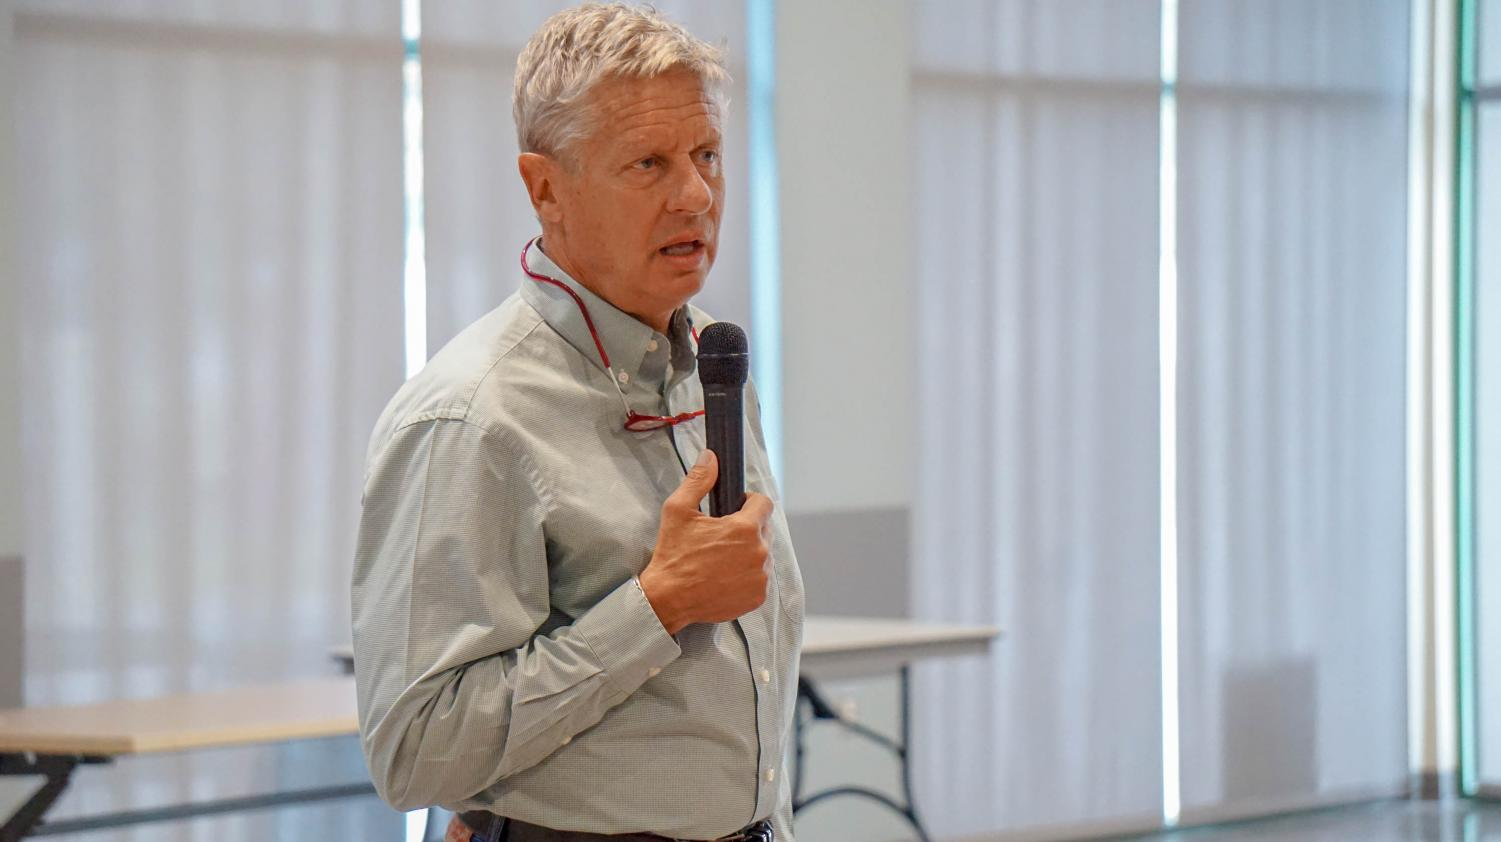 Gary Johnson stopped by NMSU to discuss his platforms as the Libertarian candidate for the U.S. Senate.